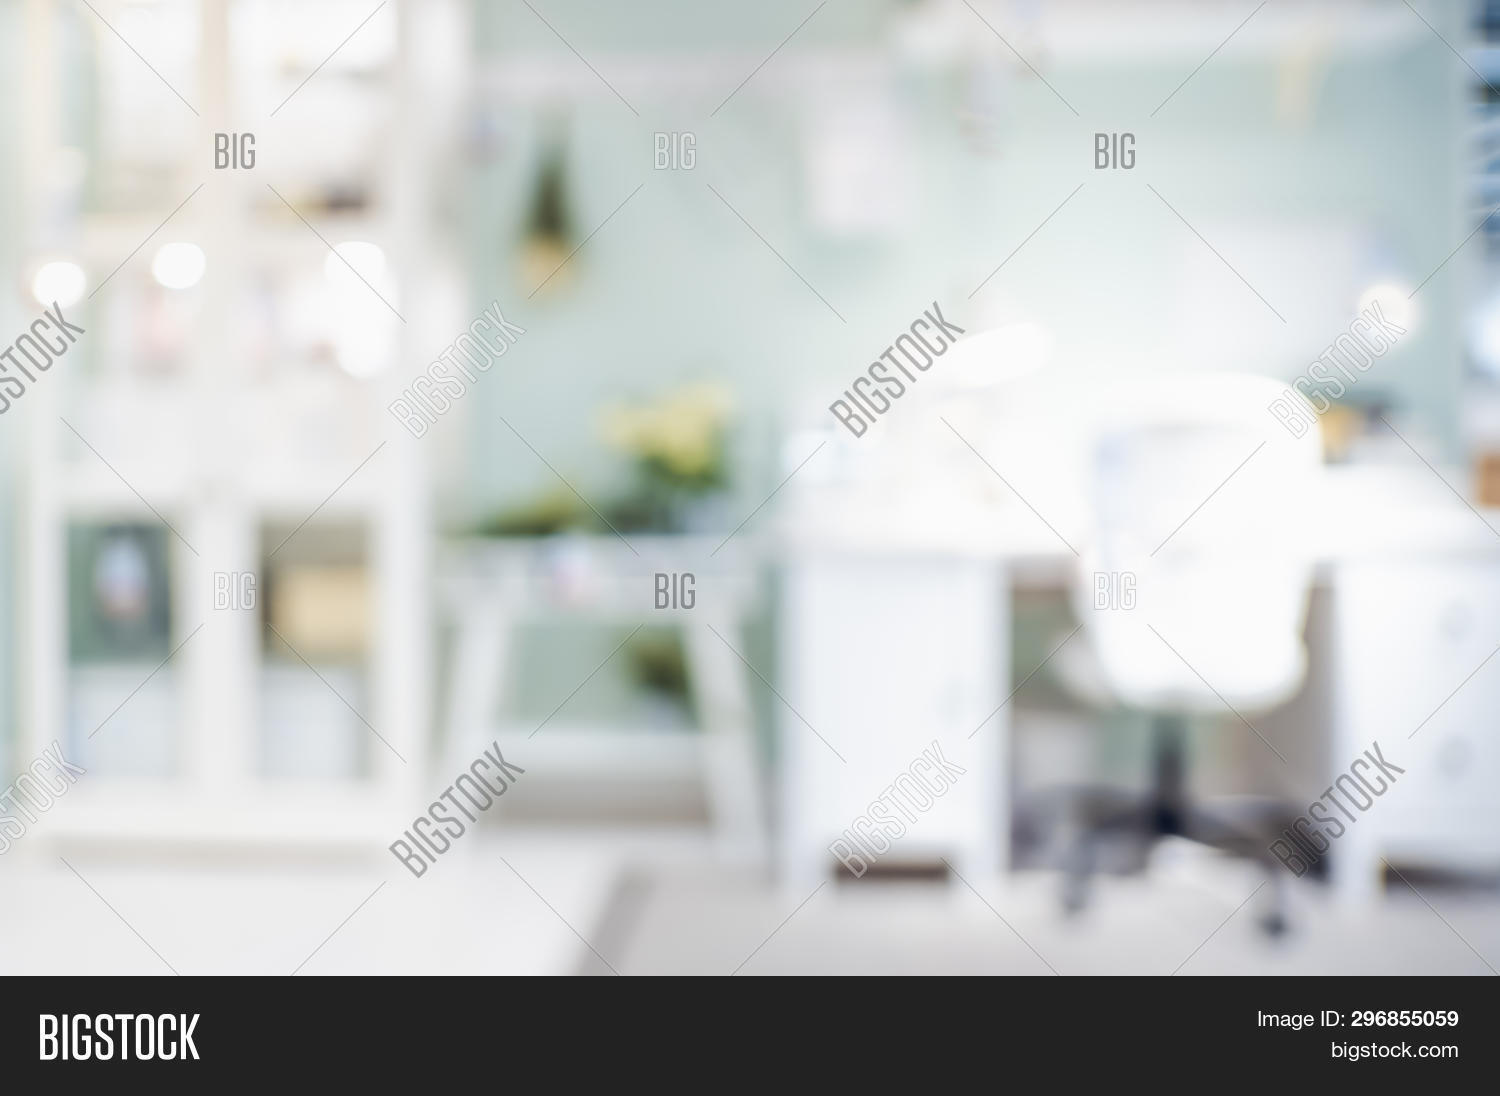 Blur Desk Workplace Image Photo Free Trial Bigstock